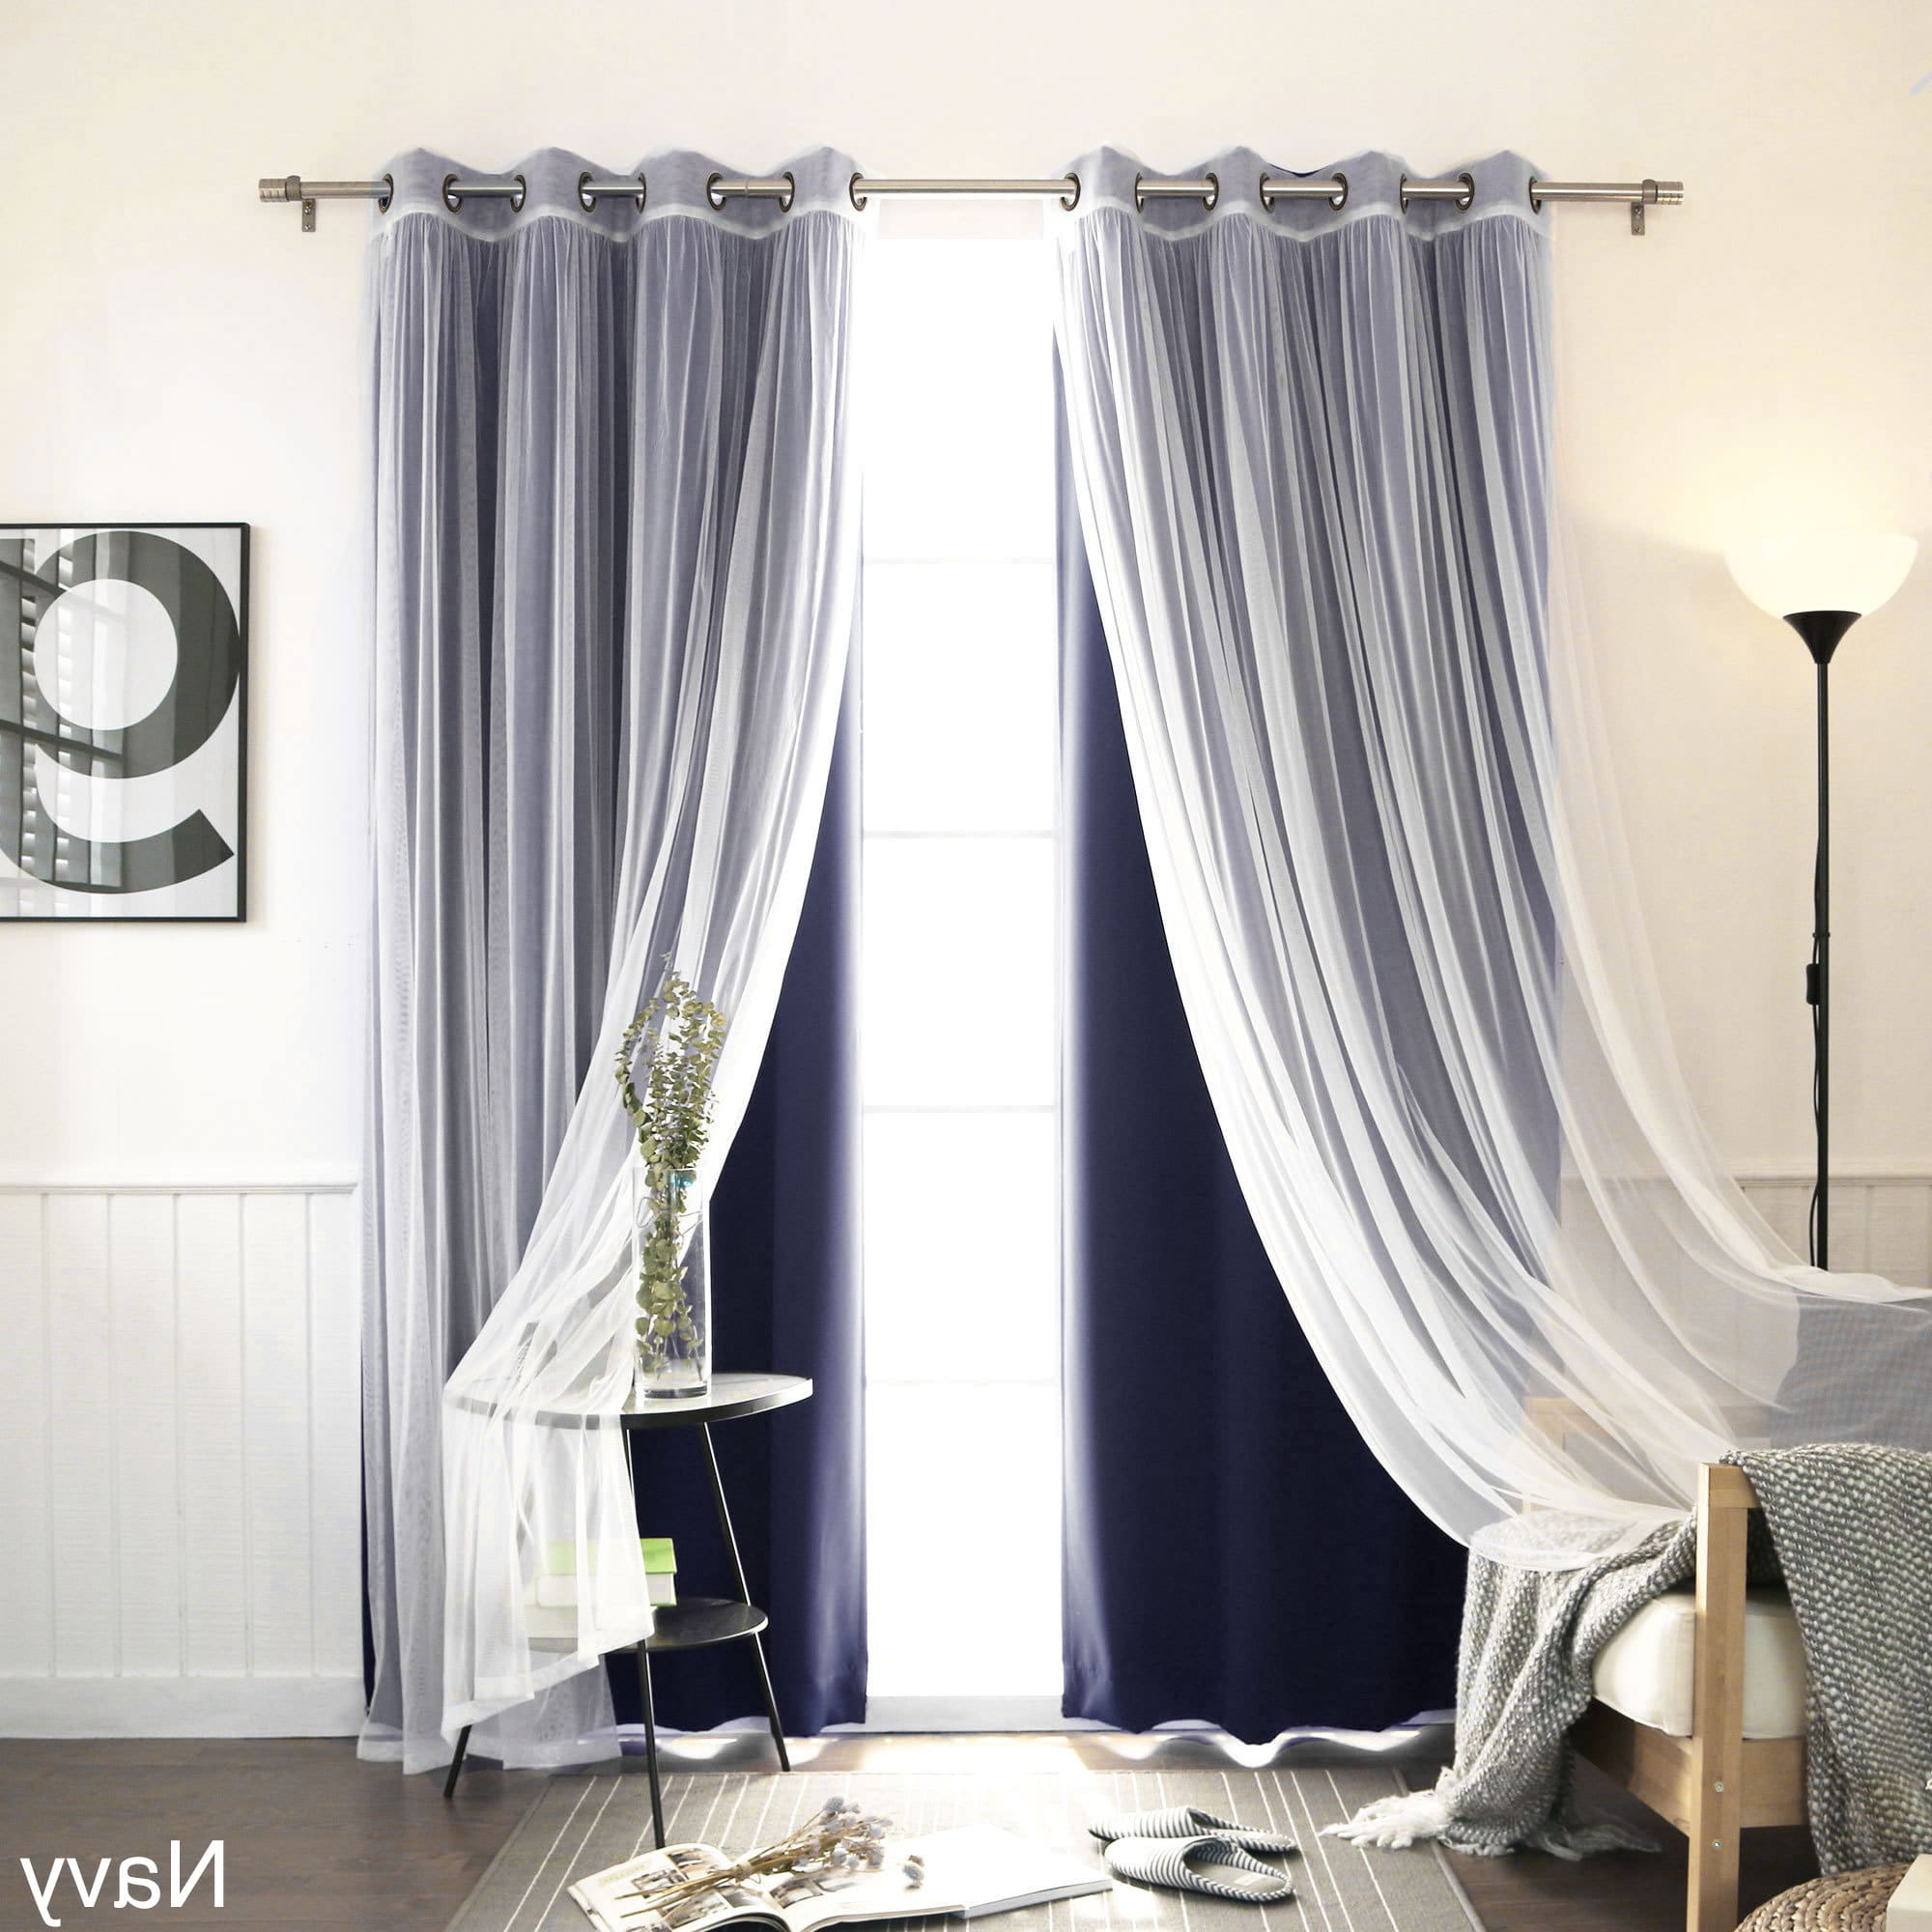 Mix & Match Blackout Tulle Lace Bronze Grommet Curtain Panel Sets For Most Popular Aurora Home Mix & Match Blackout Tulle Lace Bronze Grommet (View 4 of 20)